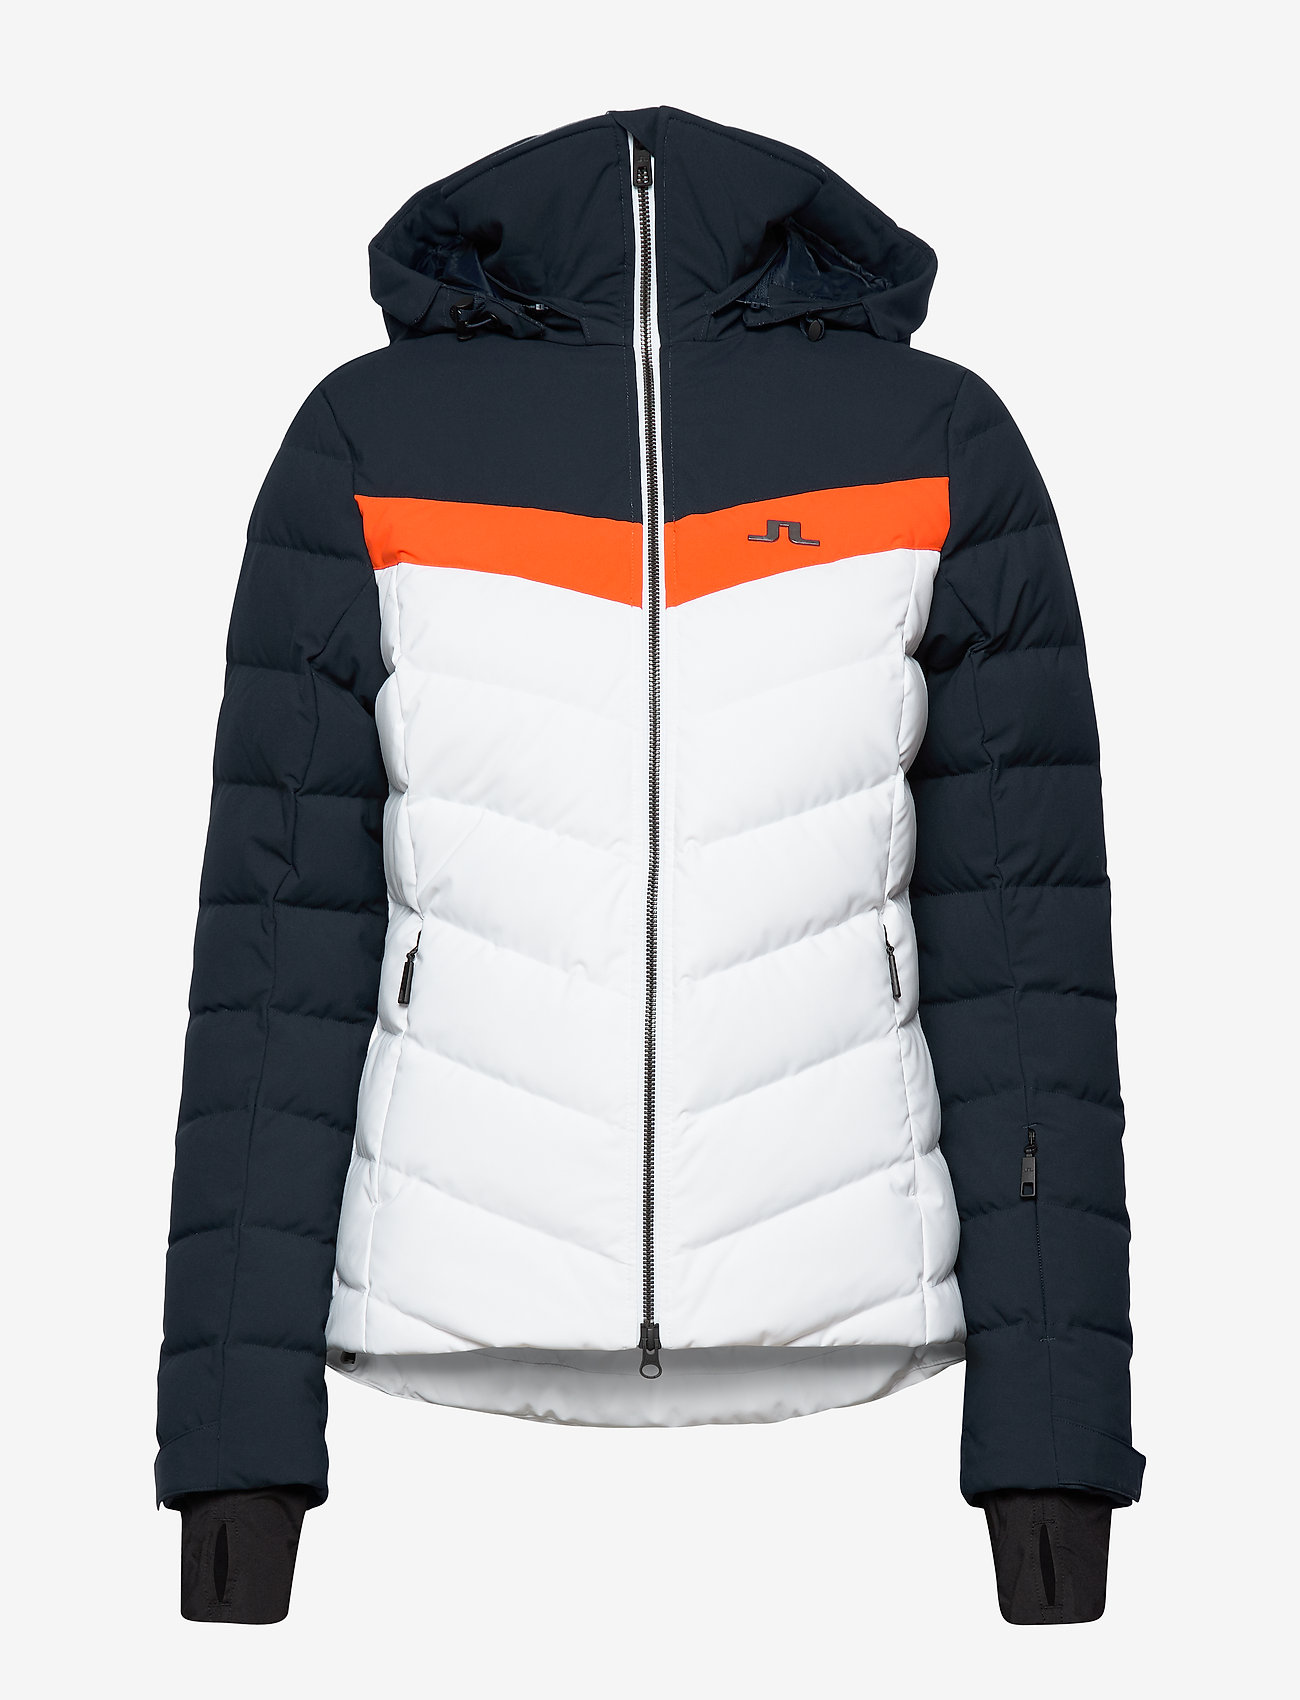 J. Lindeberg Ski W Russel Down Jkt-jl 2l - Jackor & Kappor Juicy Orange